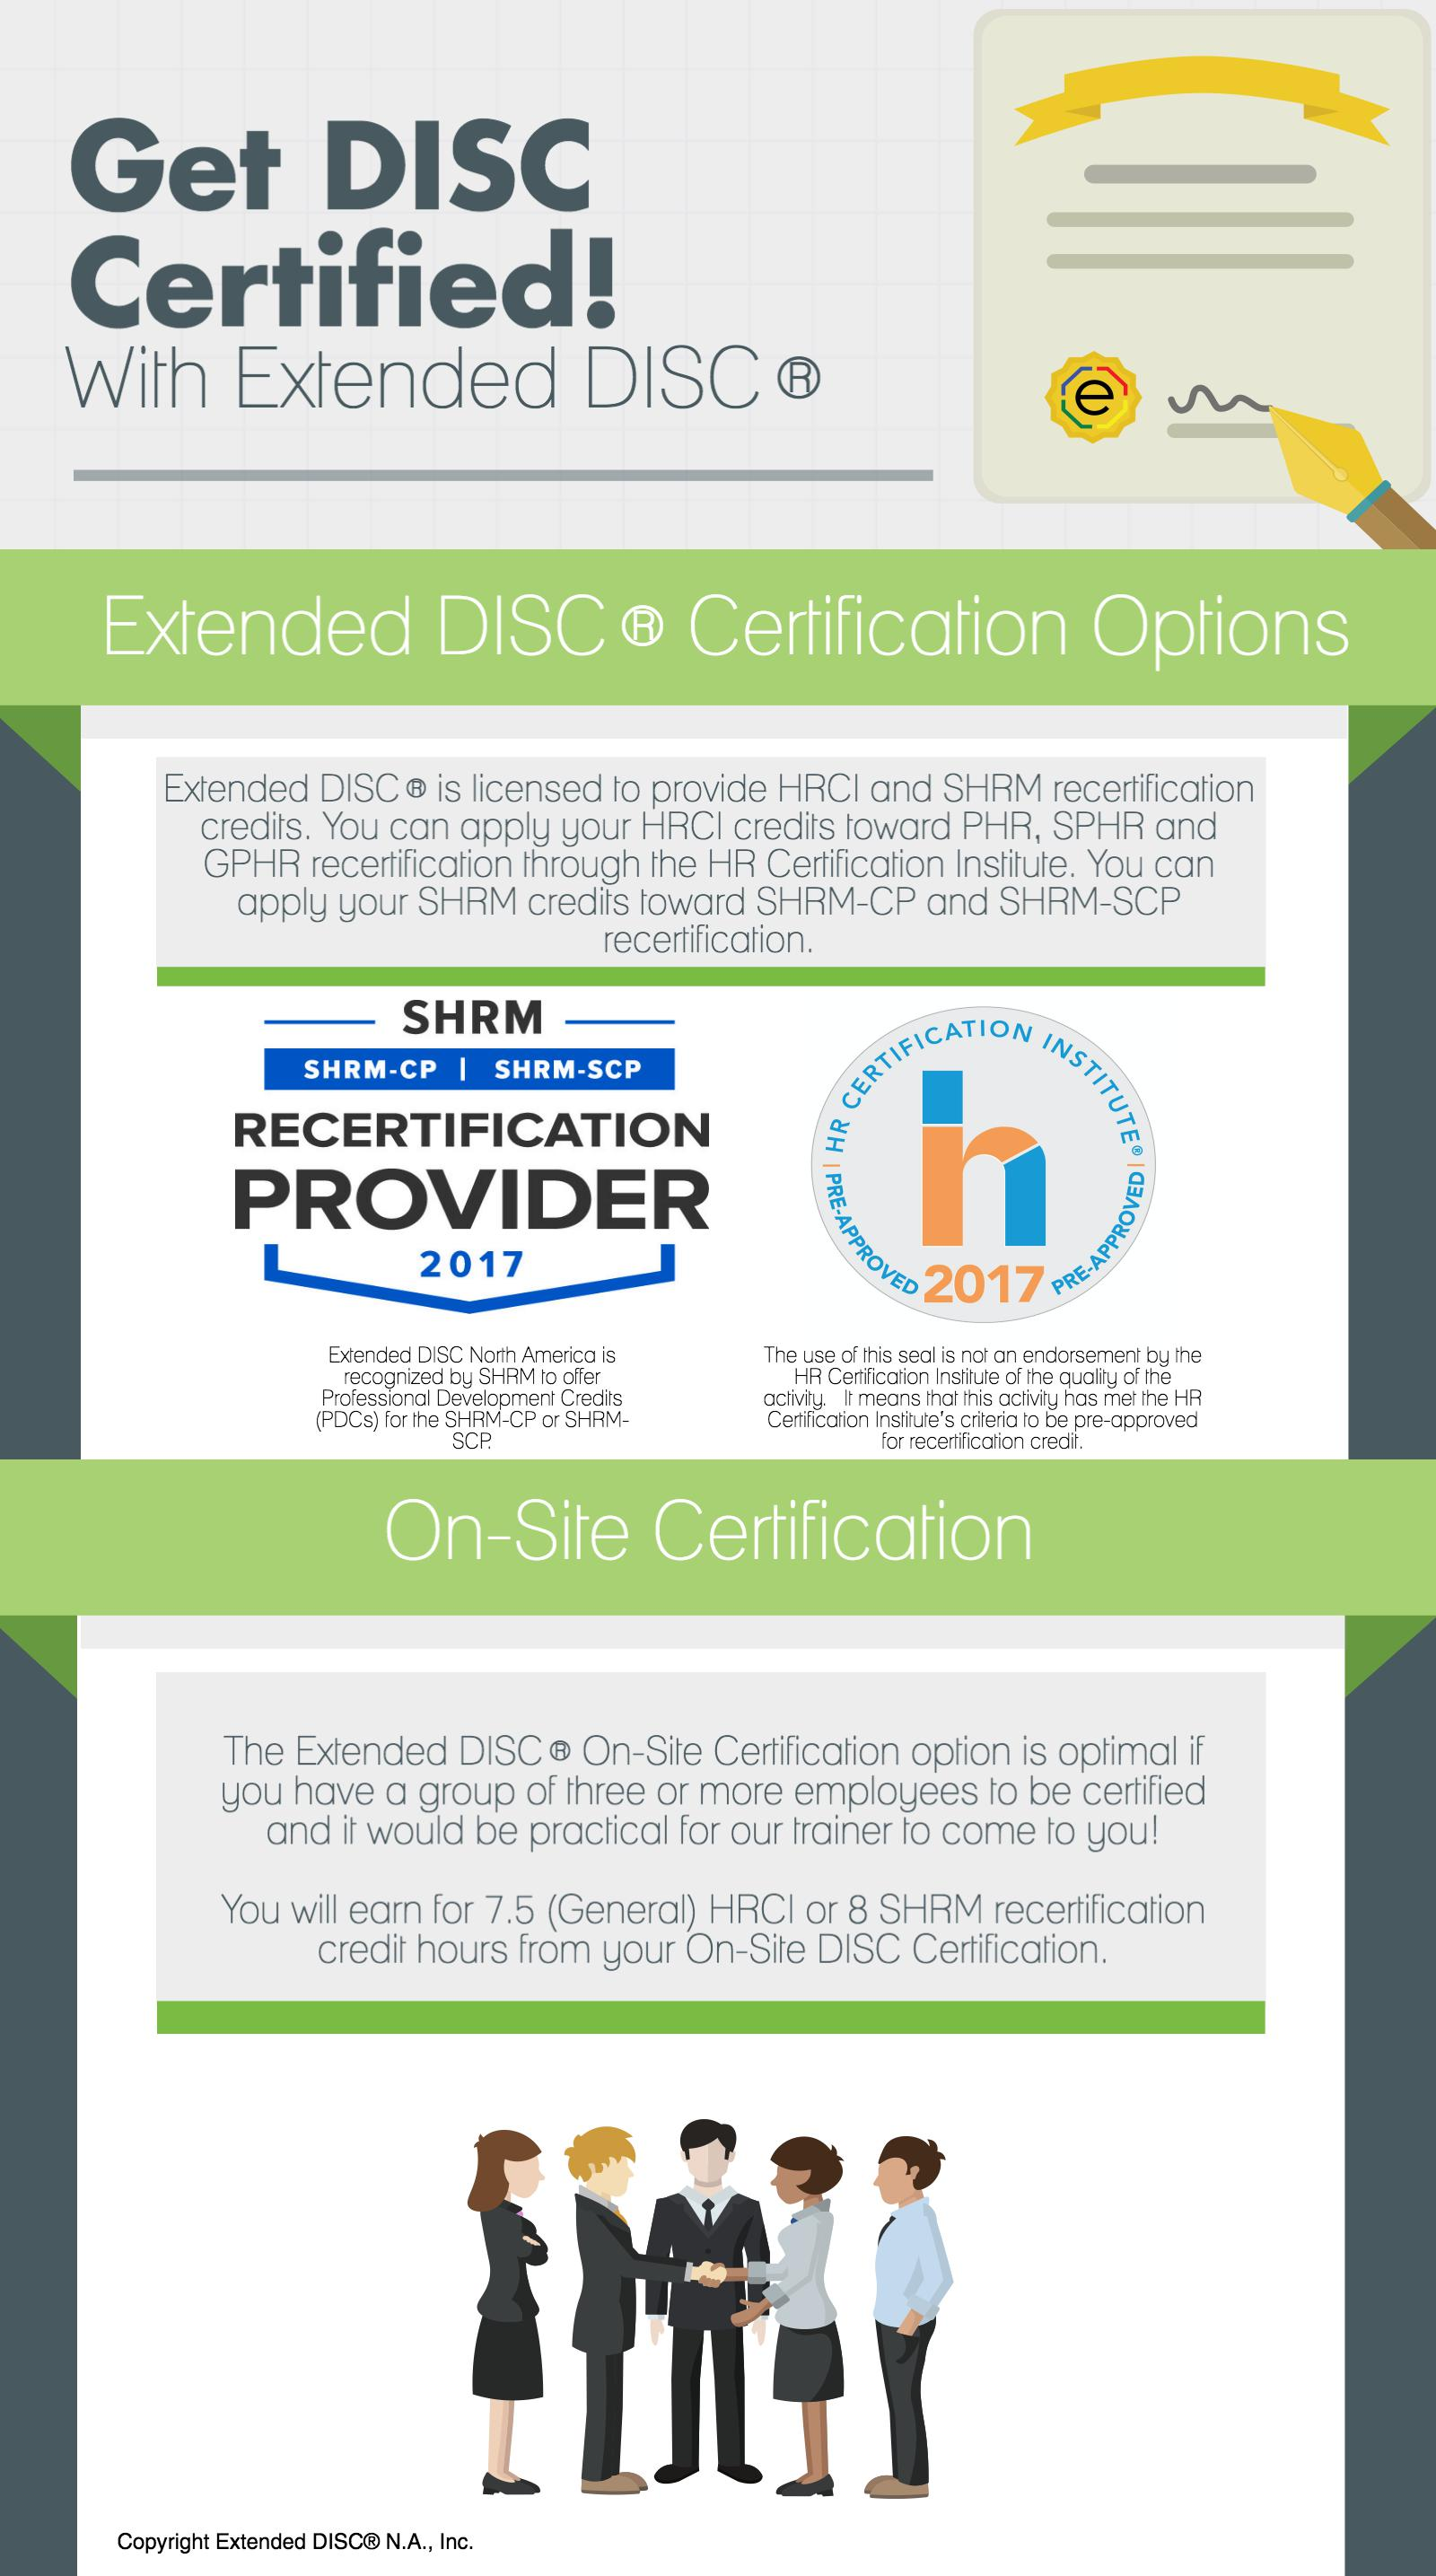 Extended DISC Certification: On-Site